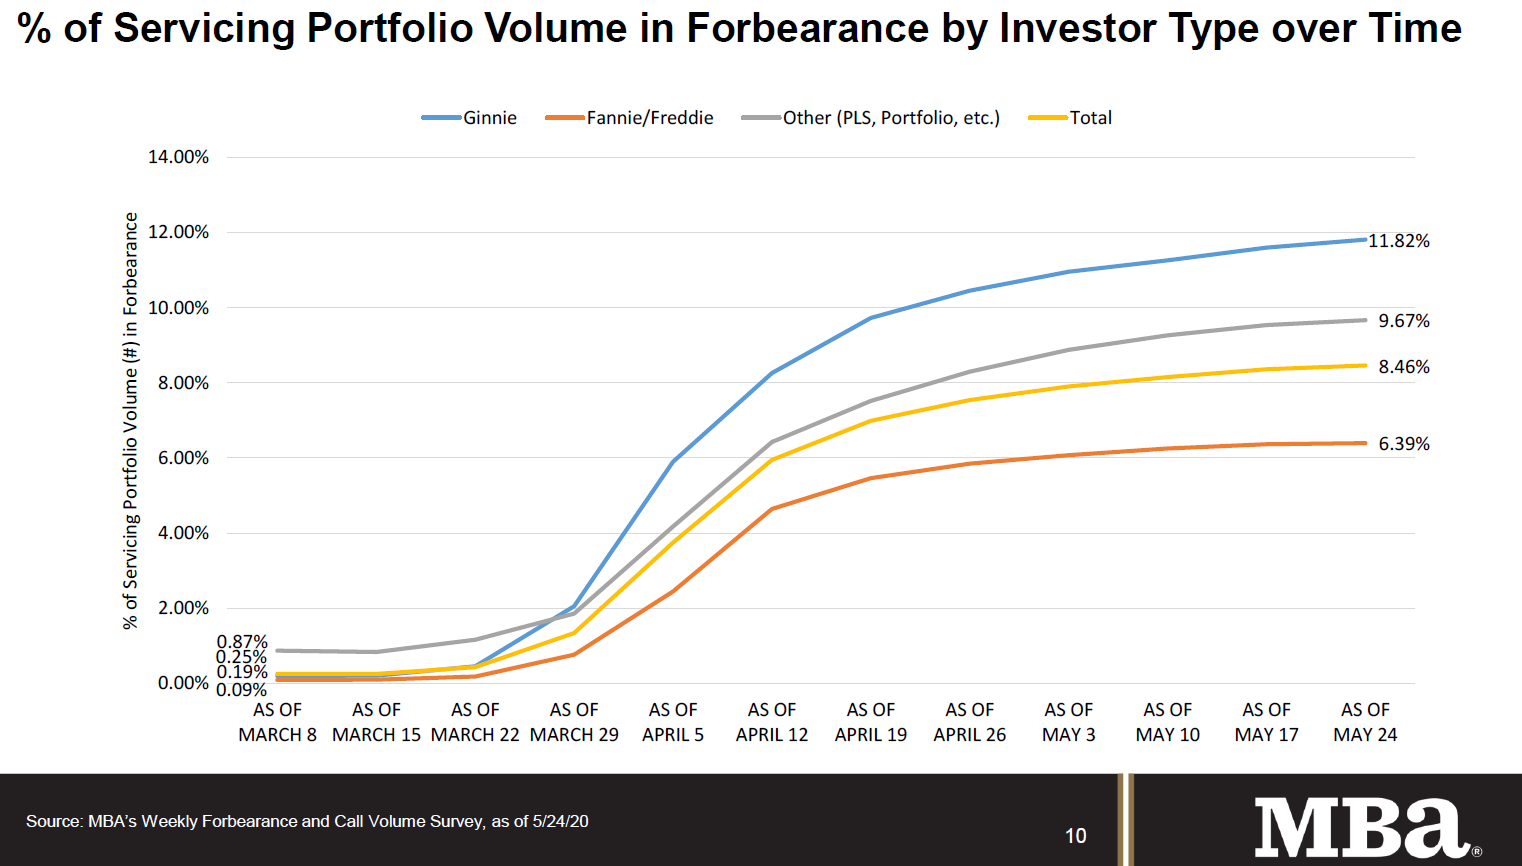 Visualization for Percent of Mortgage Servicing Portfolio Volume in Forbearance